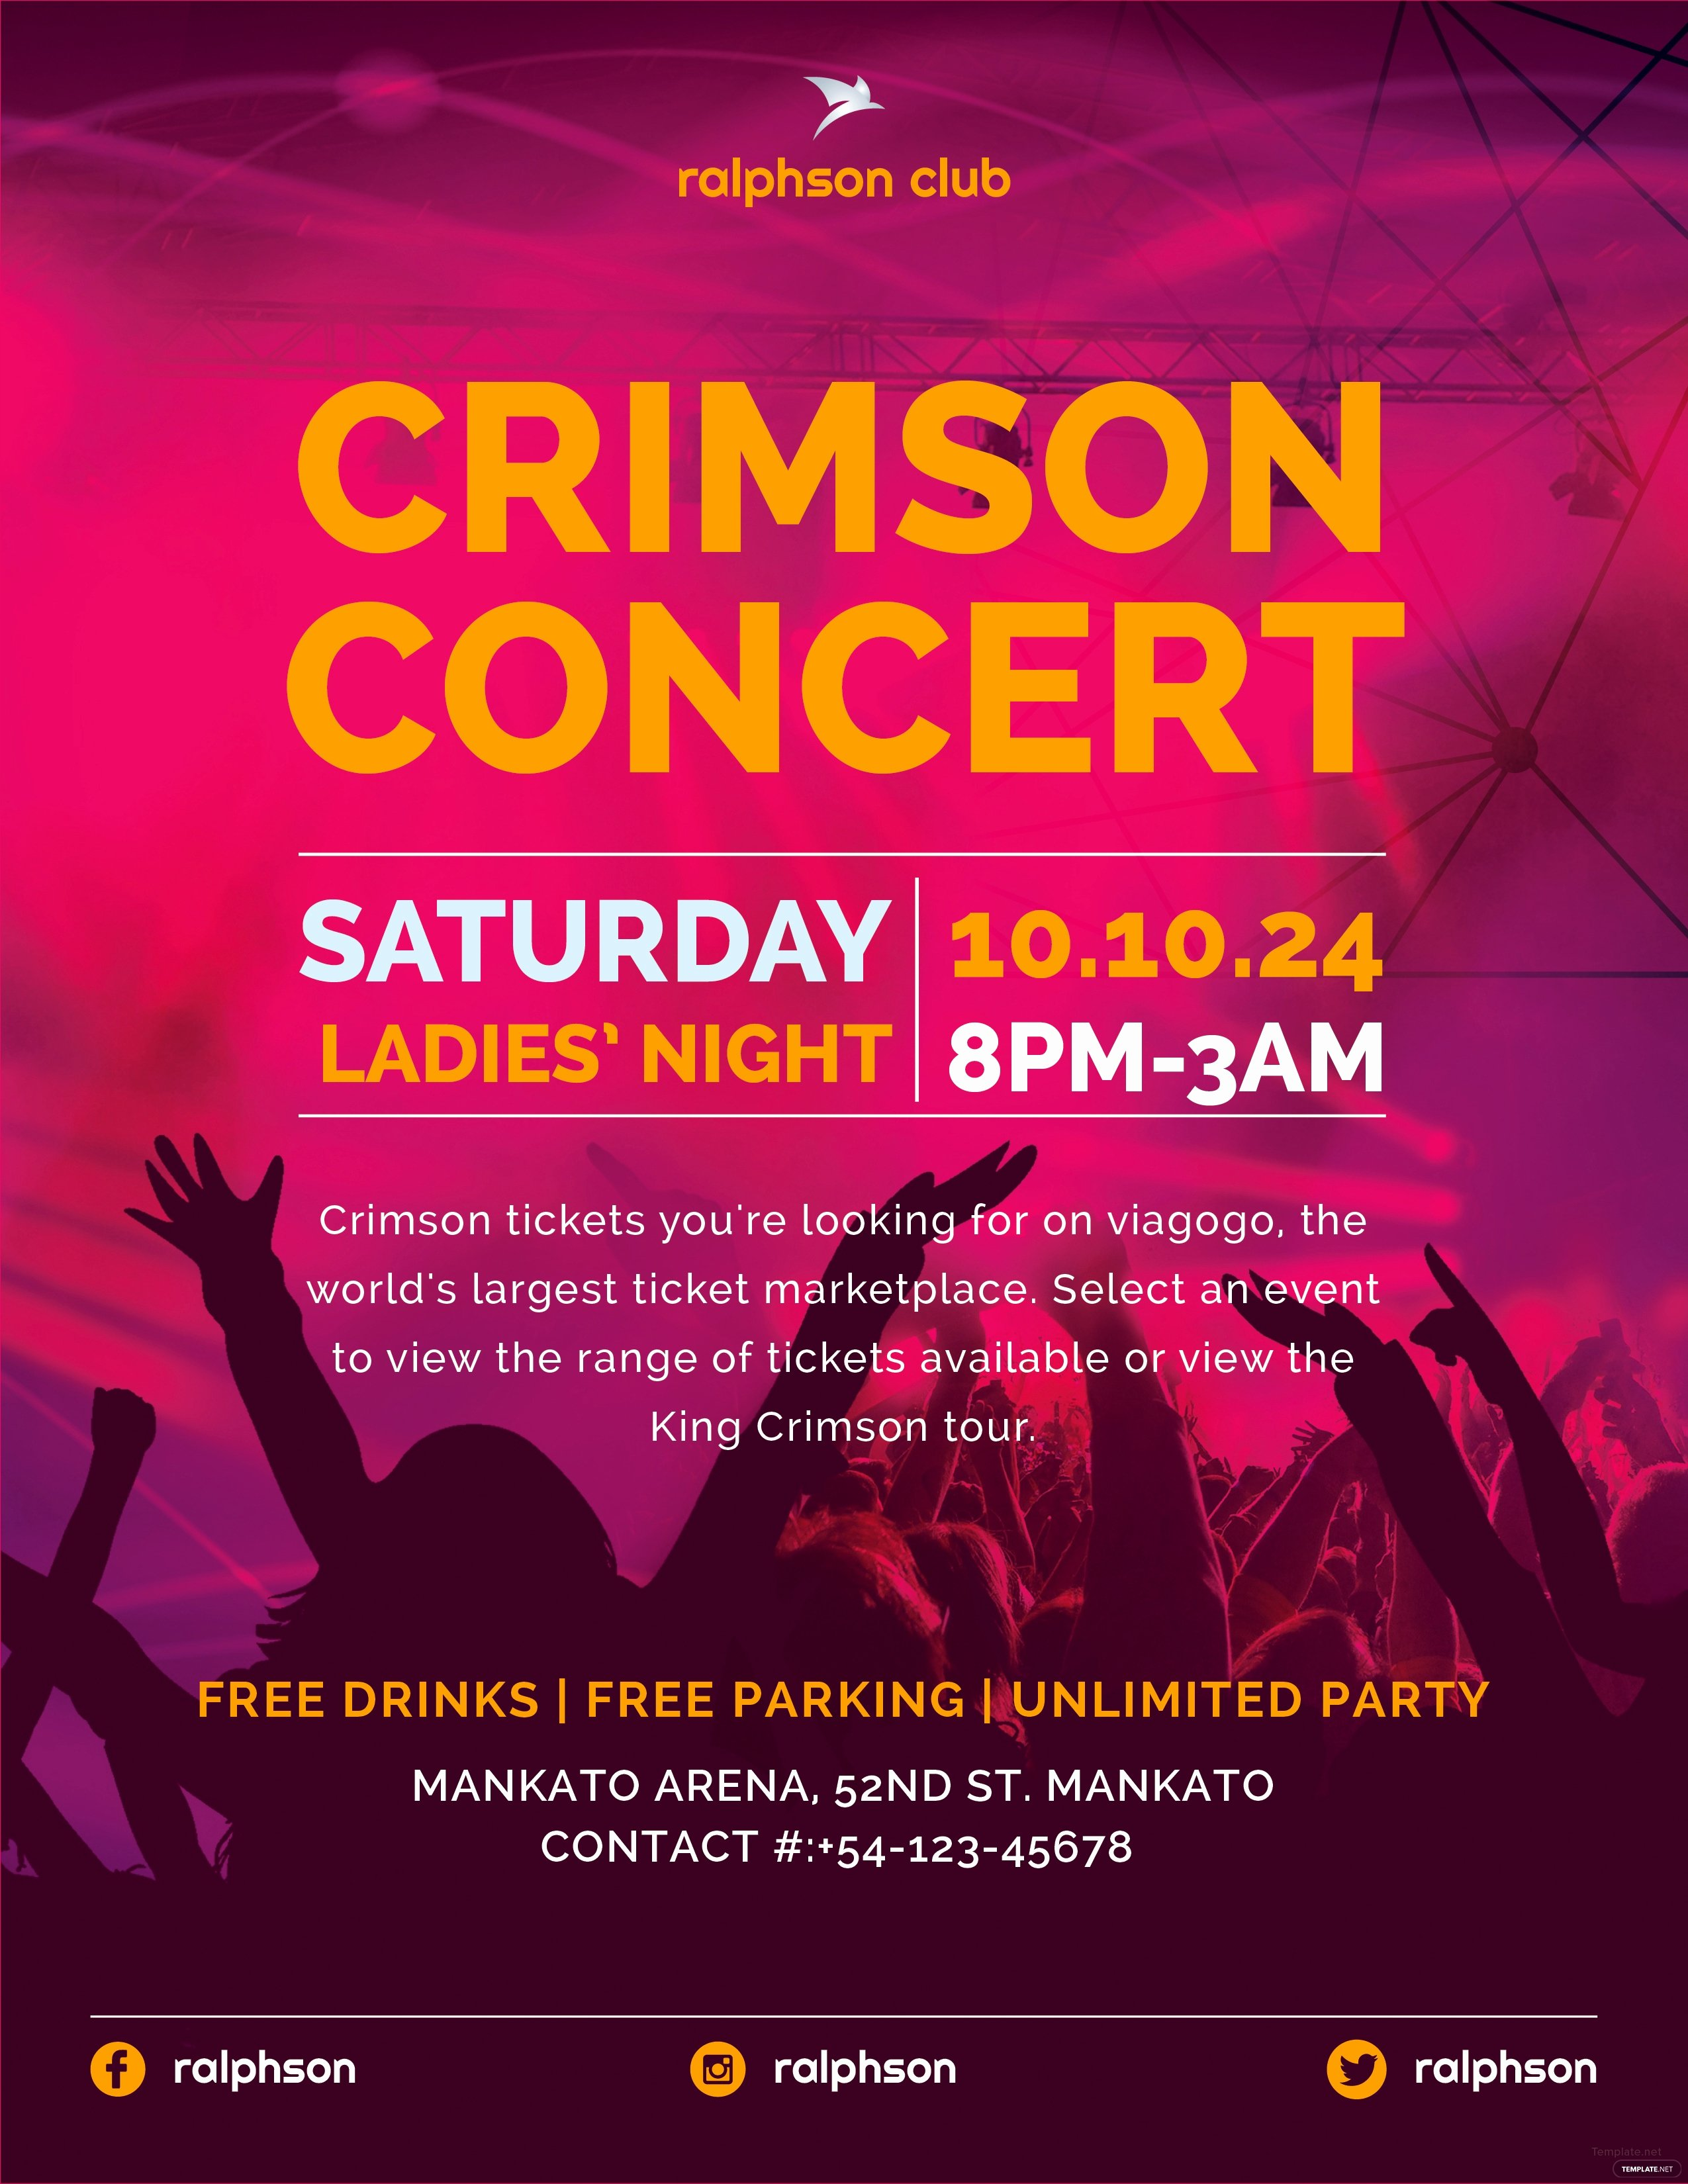 Concert Flyers Template Free Best Of Free Crimson Concert Flyer Template In Adobe Illustrator